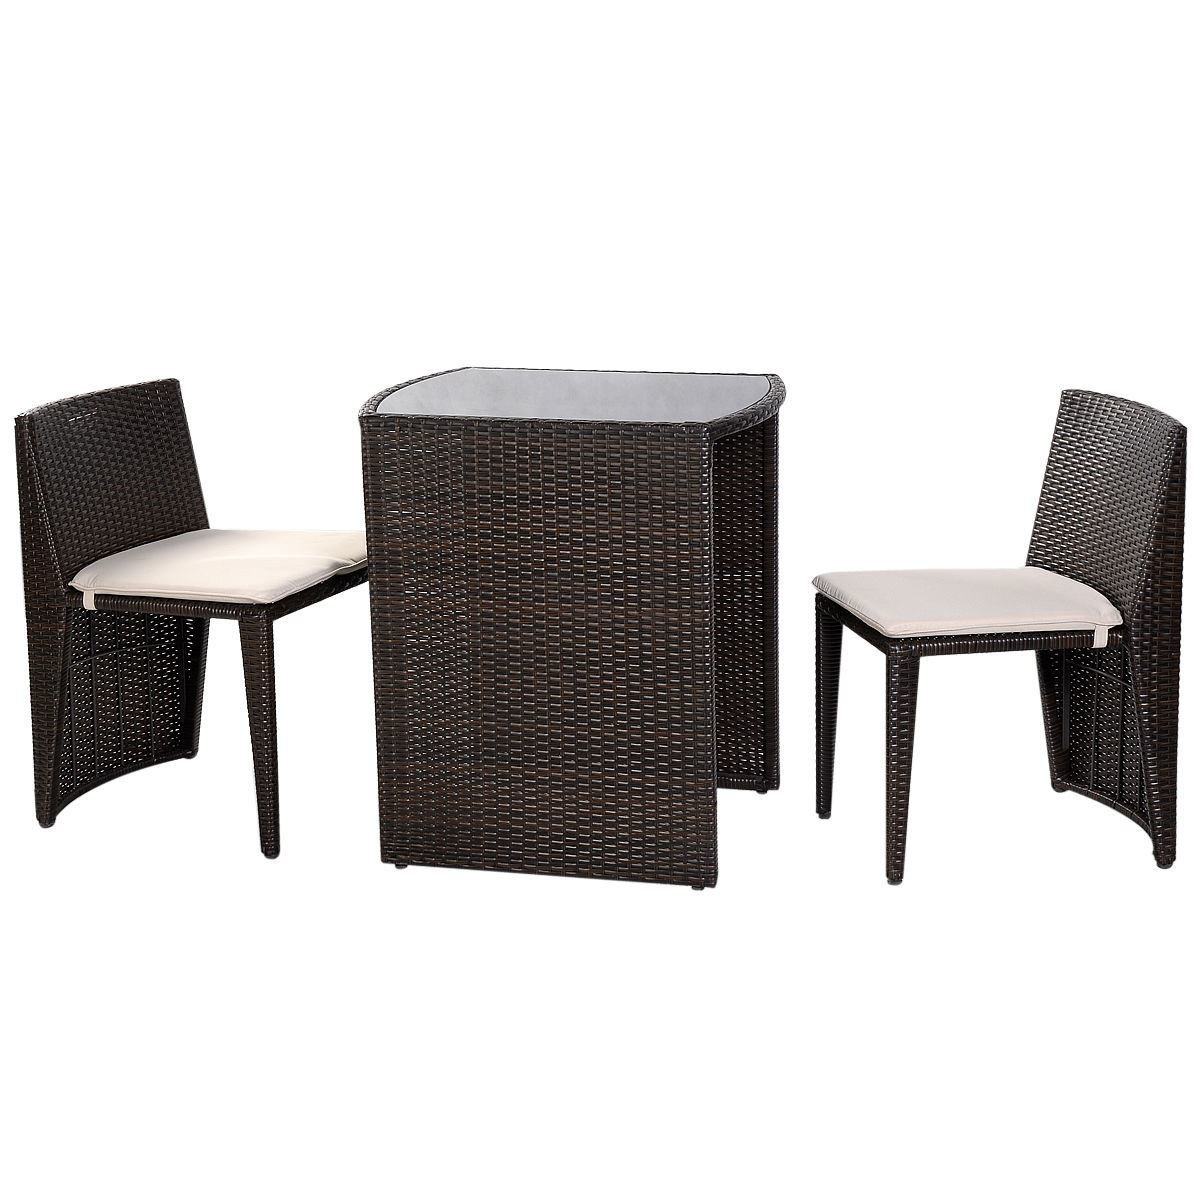 Picture of Outdoor Patio Furniture Seat - 3 Pcs Brown